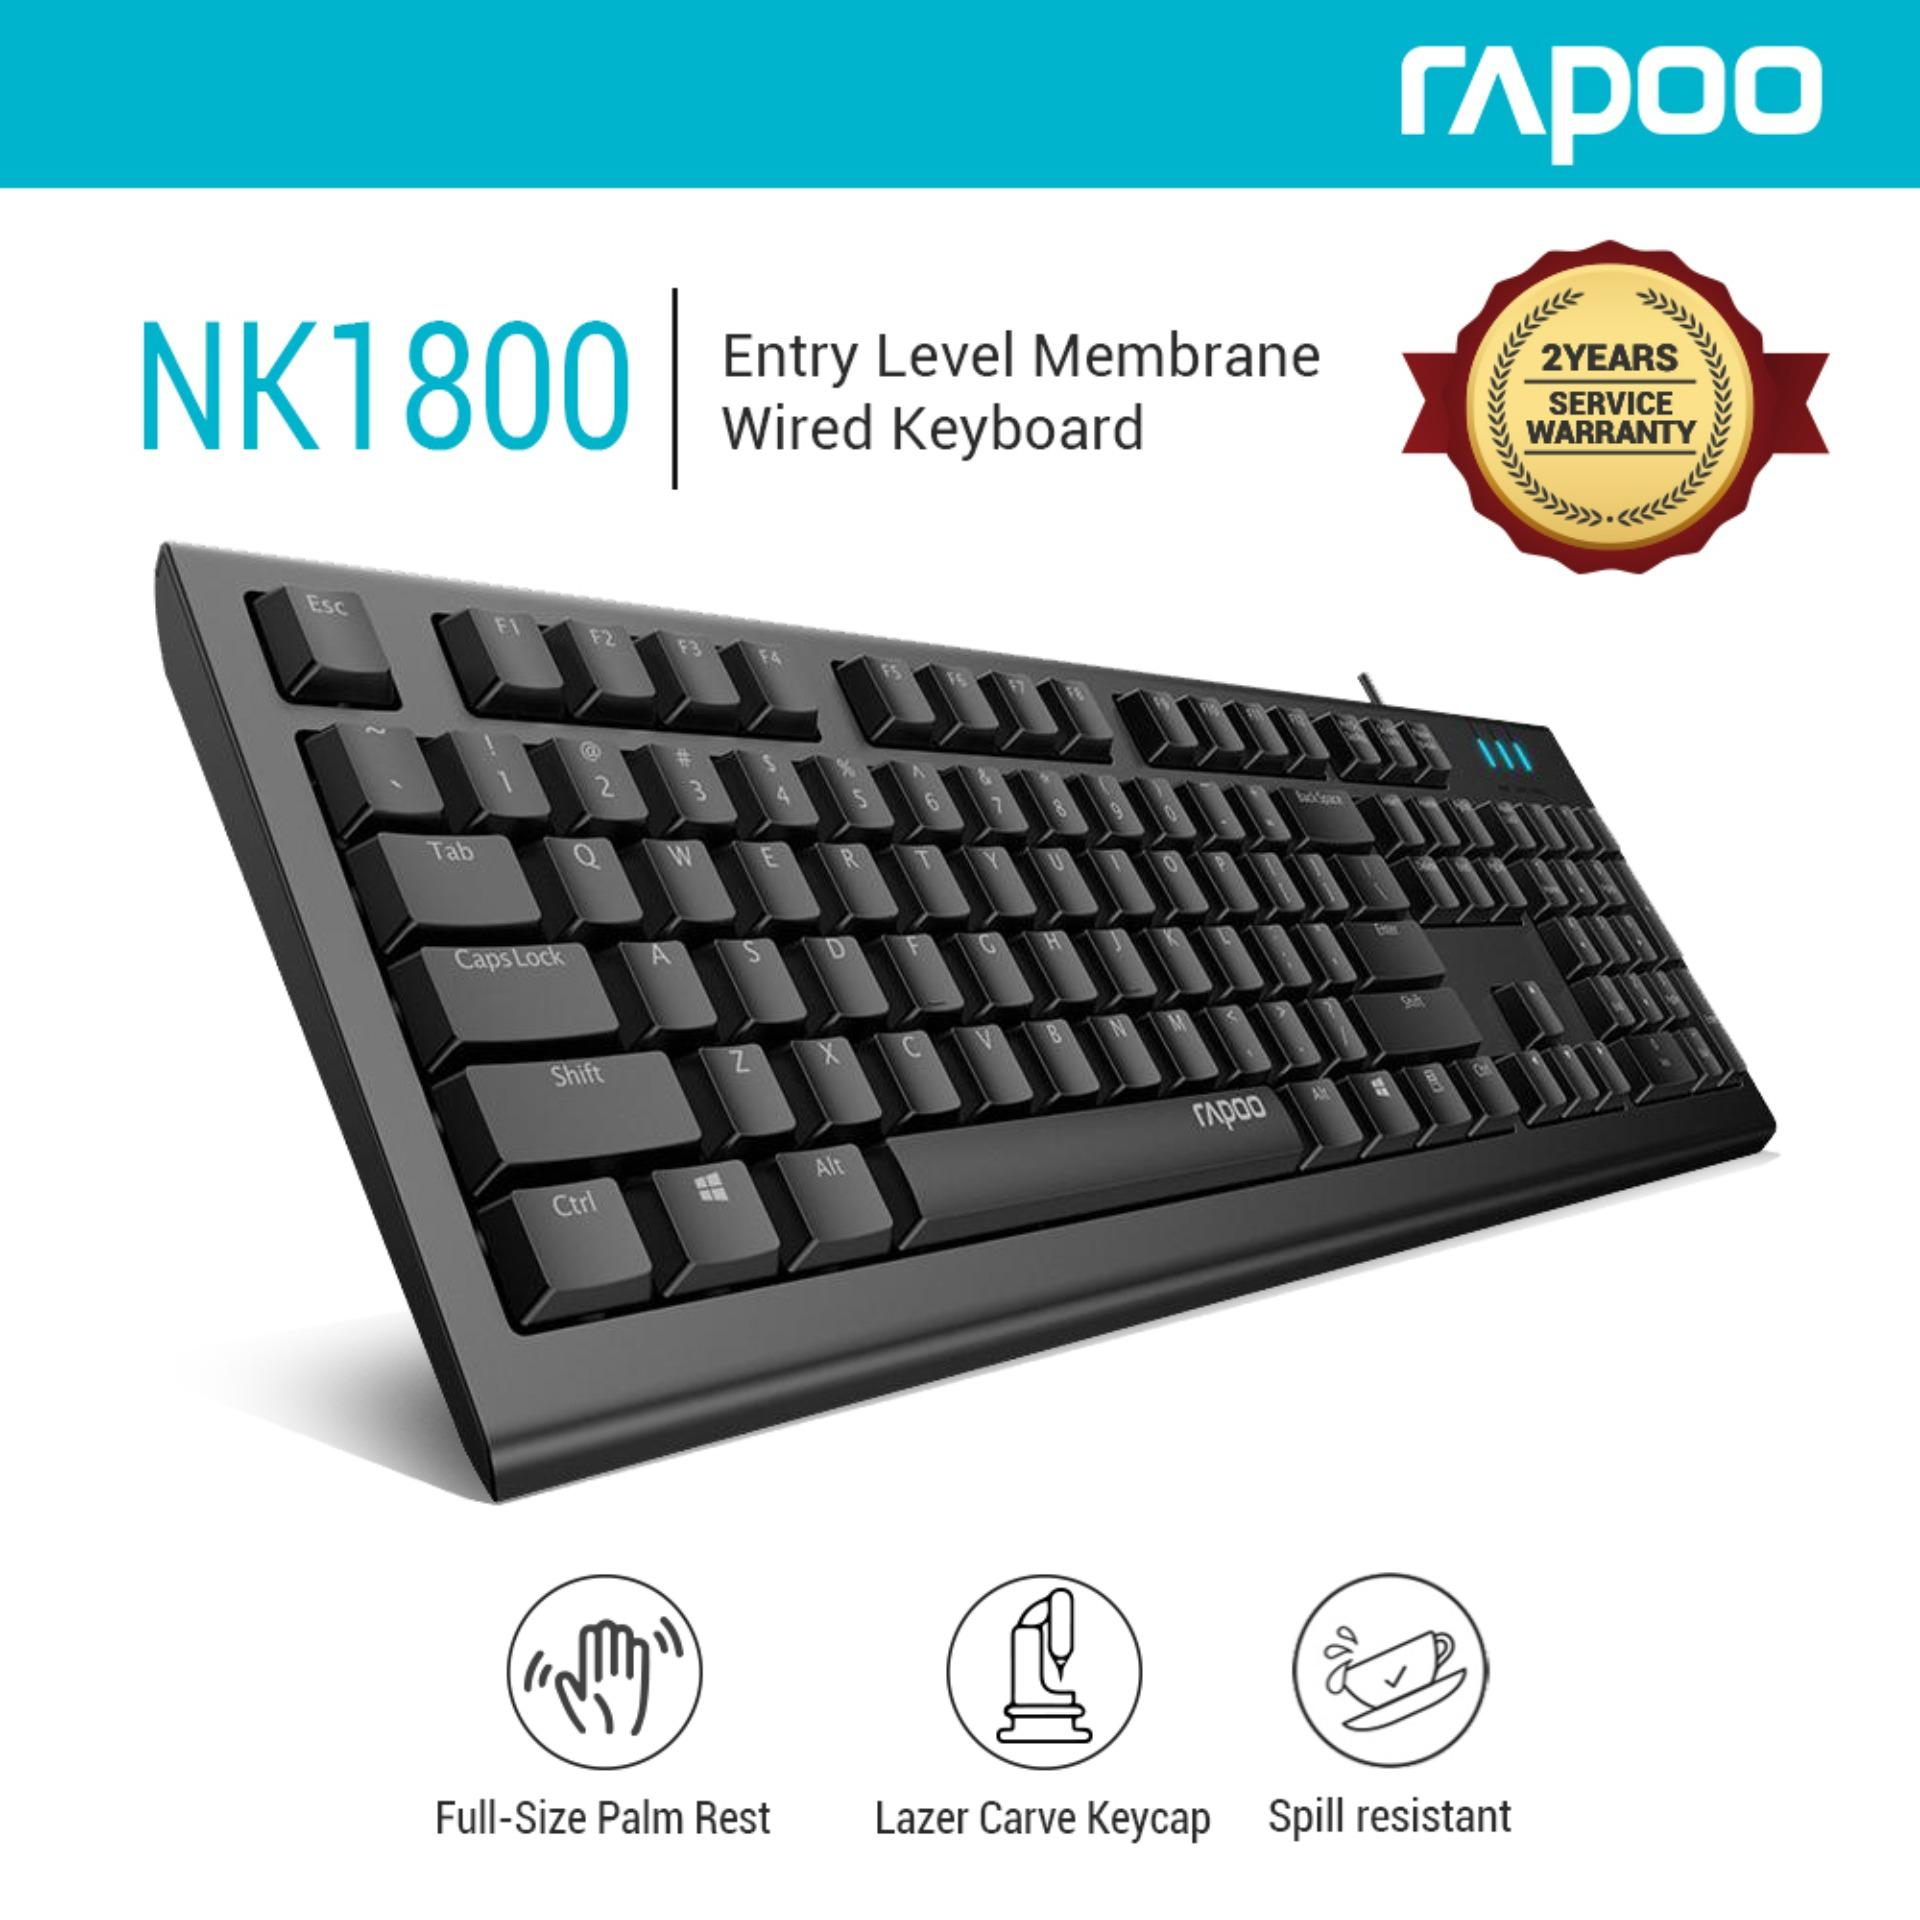 2557aff832b 74914 items found in Keyboards. Rapoo NK1800 Entry Level Membrane Wired  Keyboard